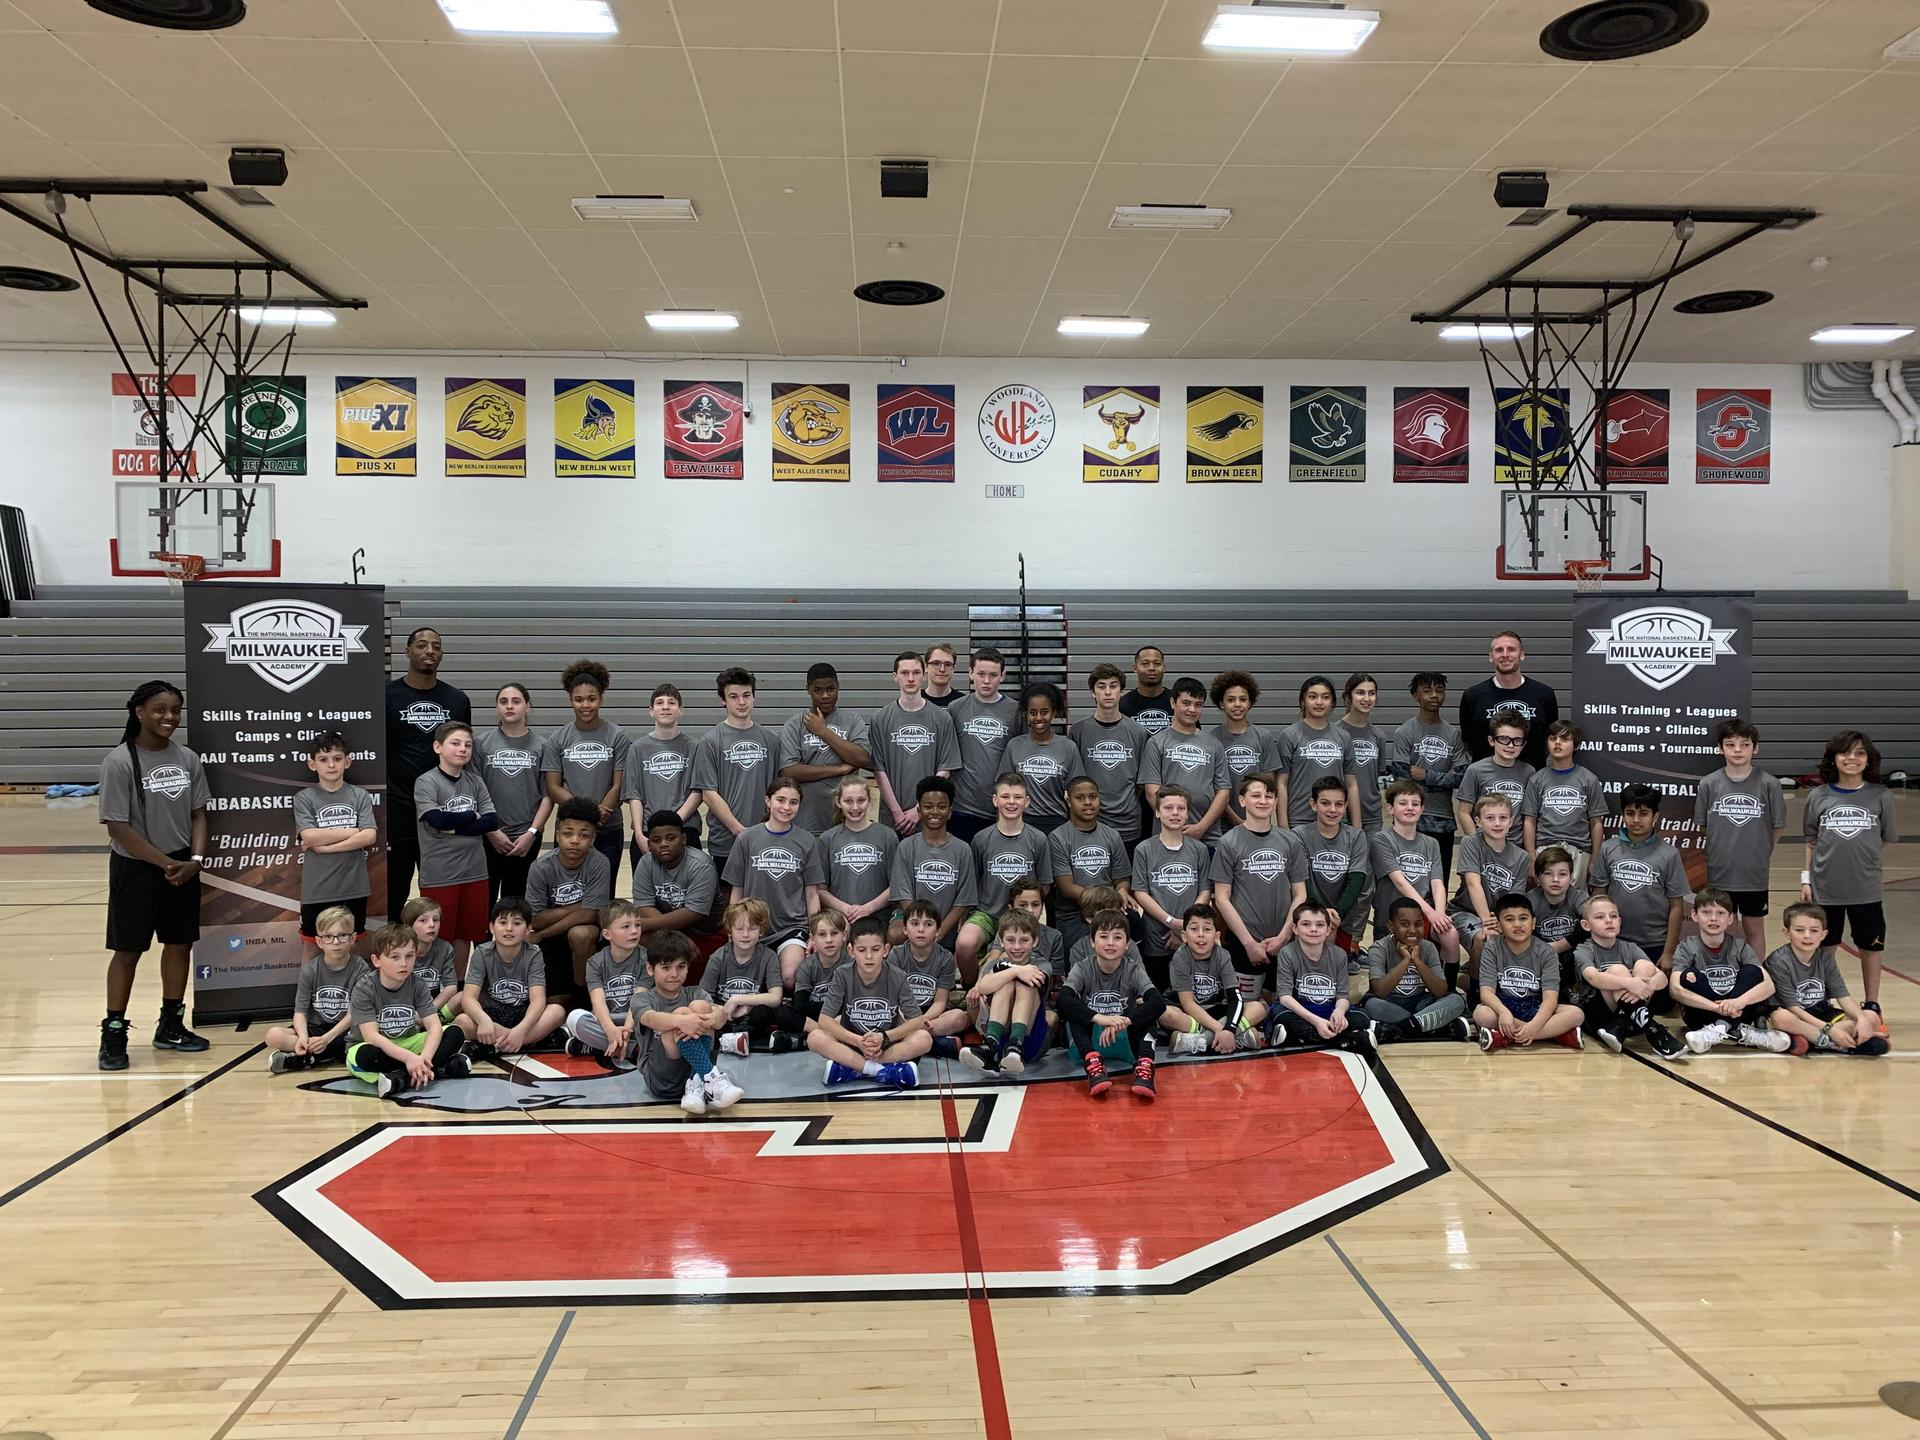 President's Day Basketball Clinic Group Photo